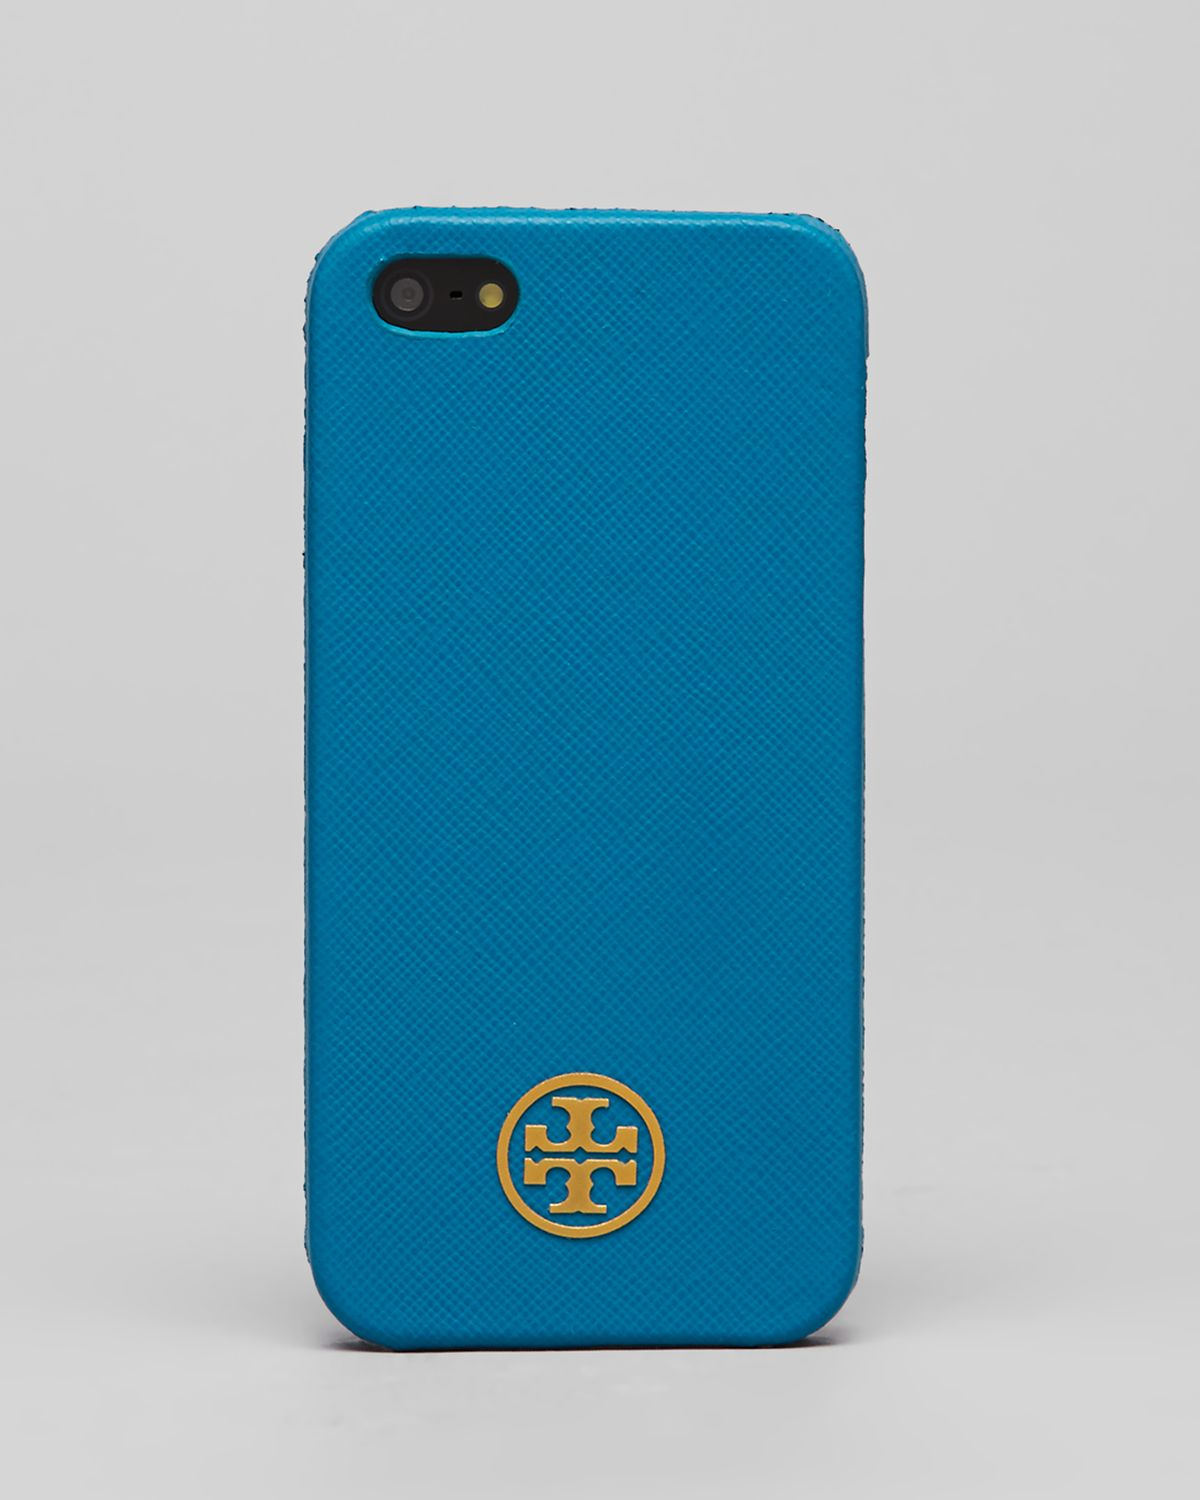 Case Design tory burch cell phone cases : Tory Burch Iphone 5 Case Robinson Hardshell In Blue Lyst - 1200x1500 ...